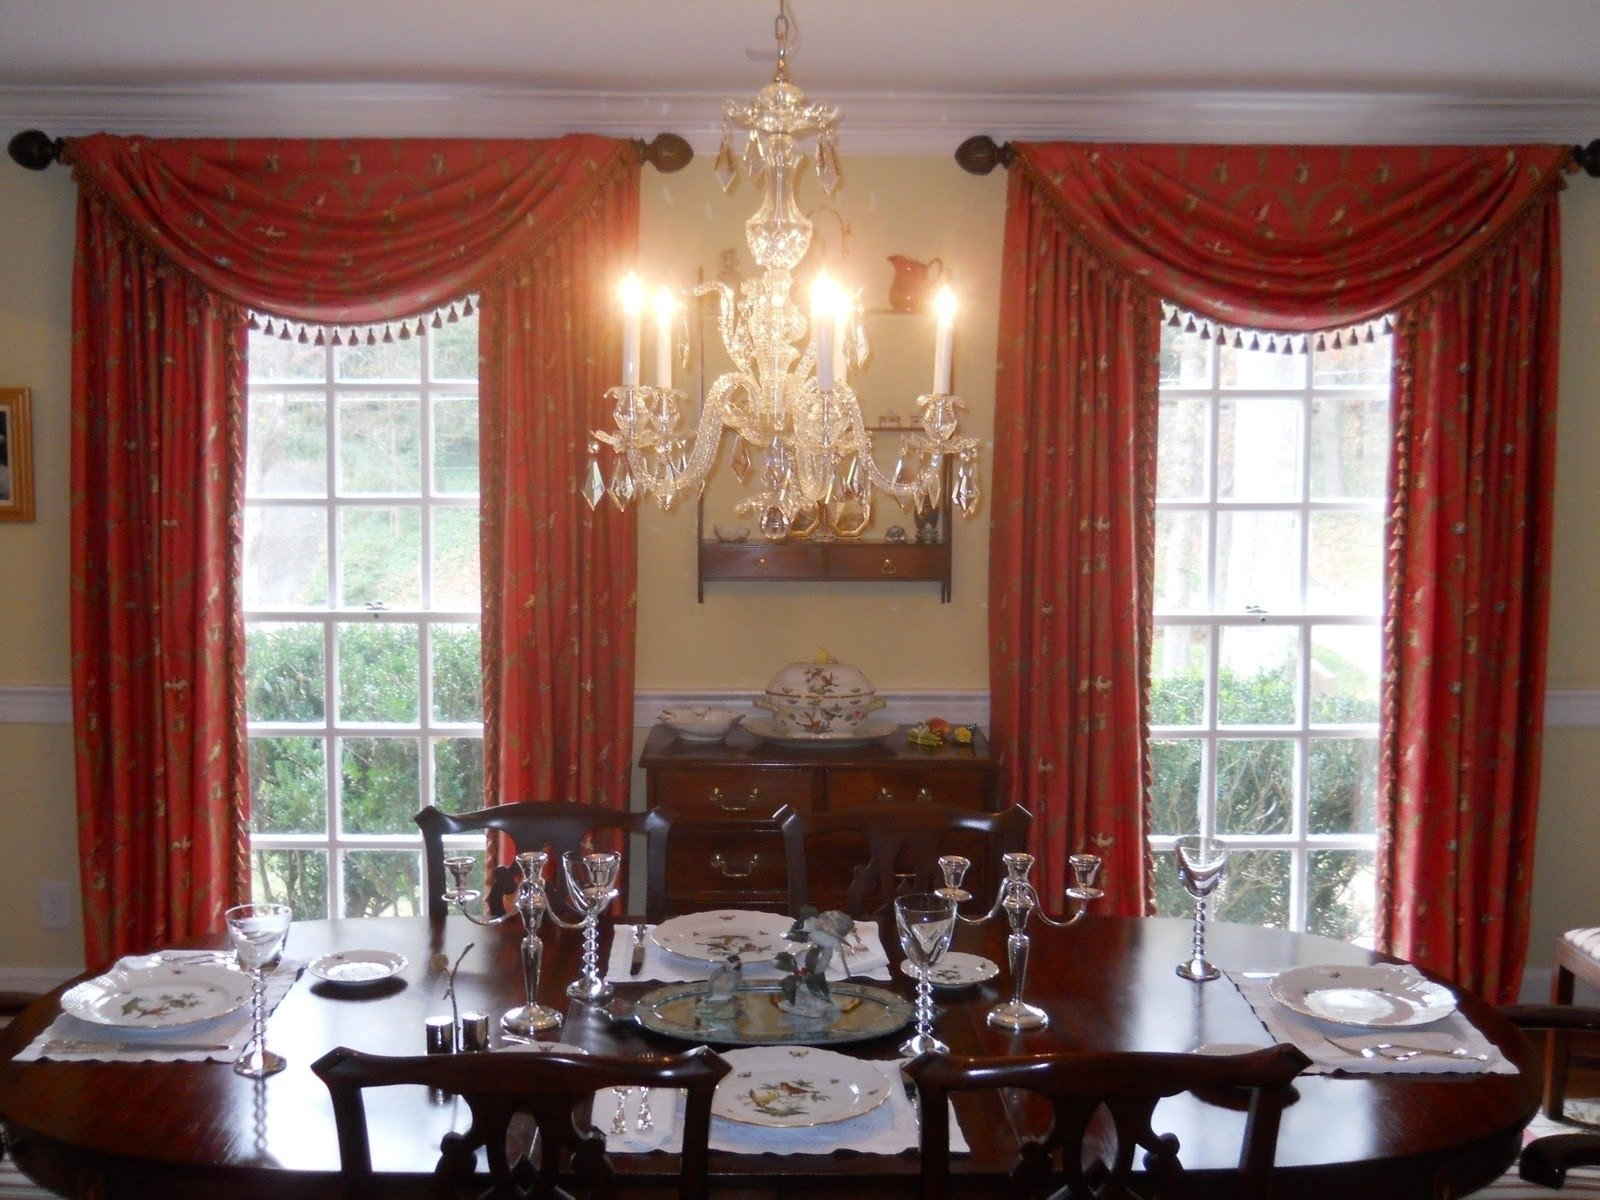 lofty design curtain ideas for dining room decorating - curtains